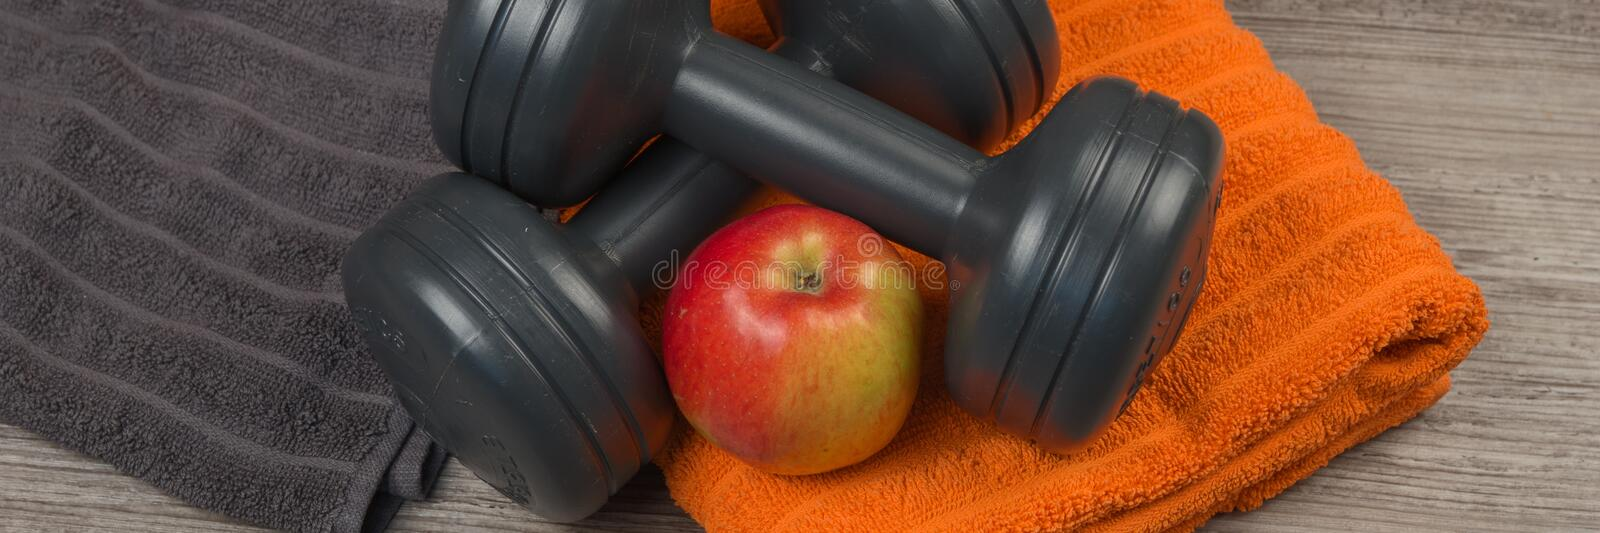 Black Dumbbell and towel with apple. Panorama. Fitness equipment. Black Dumbbell and towel with apple. Panorama royalty free stock photos